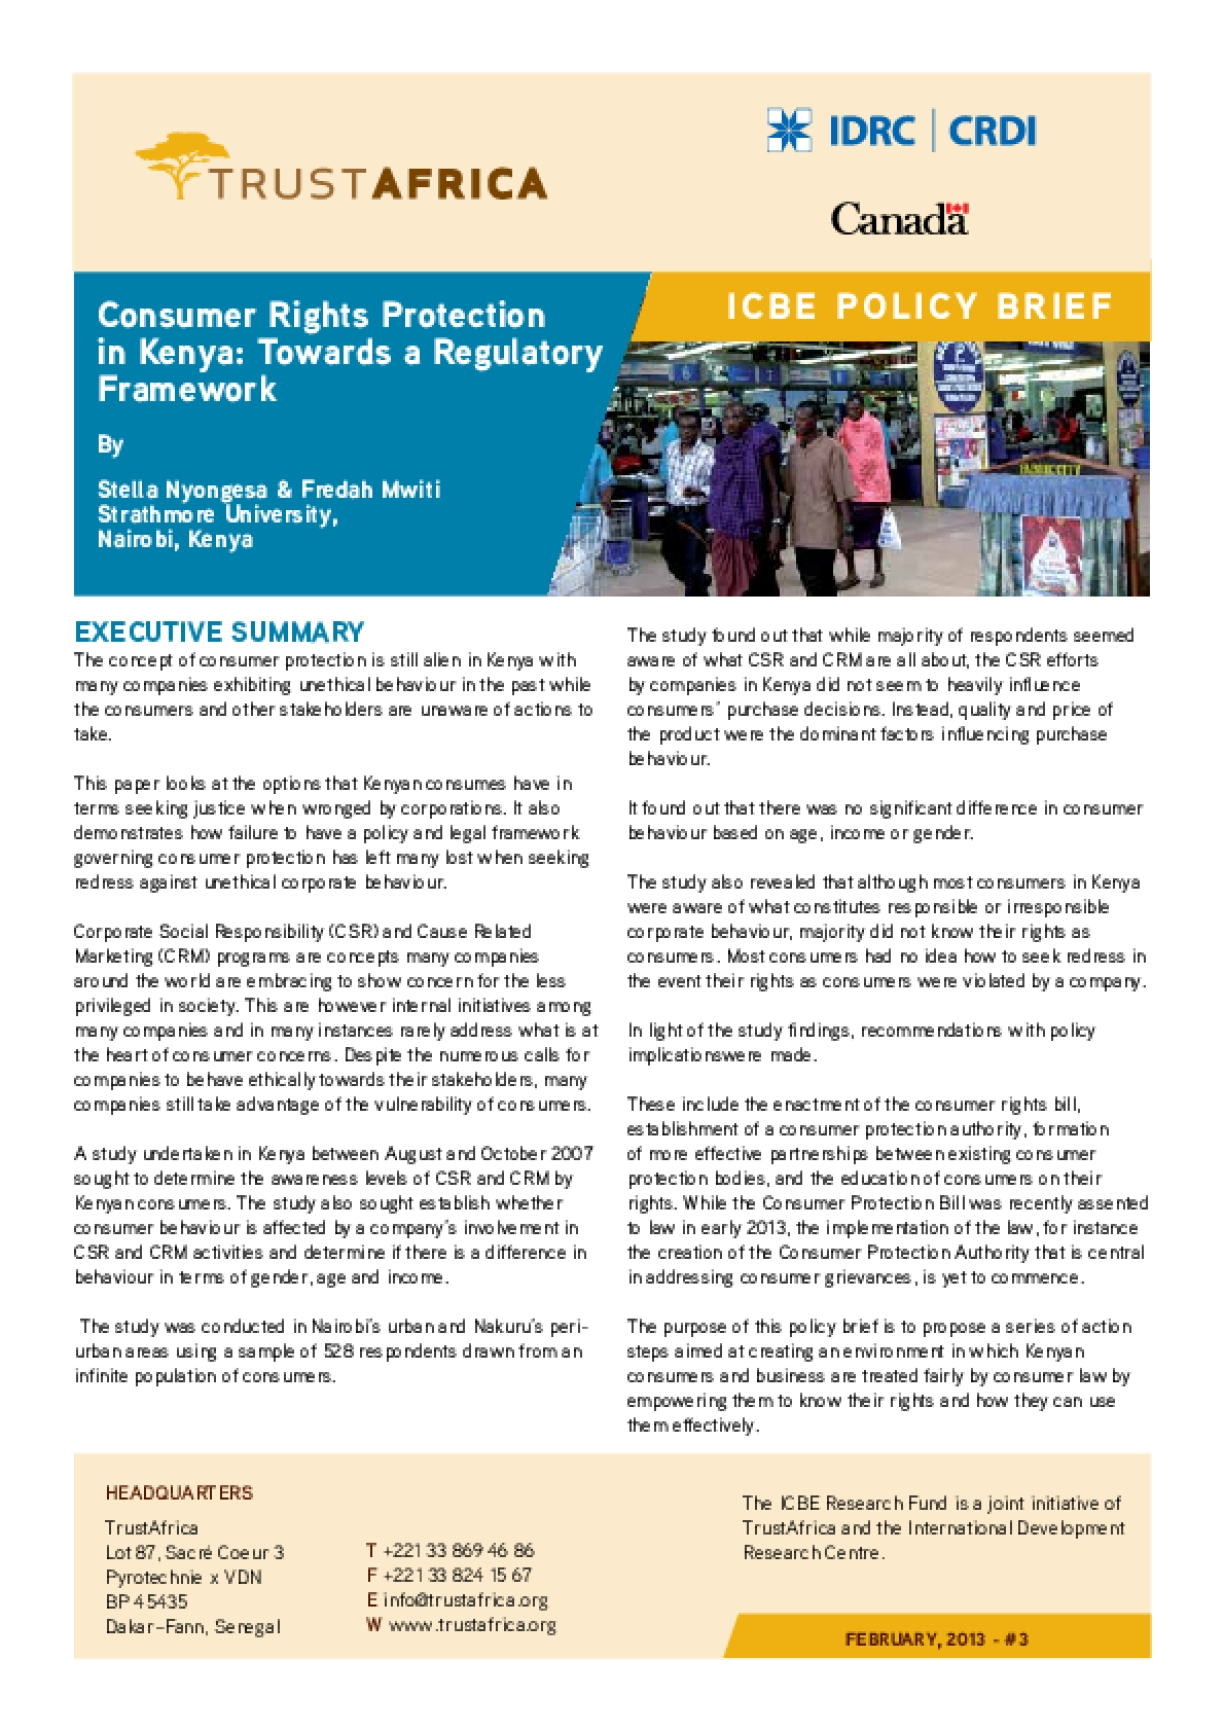 Consumer Rights Protection in Kenya: Towards a Regulatory Framework